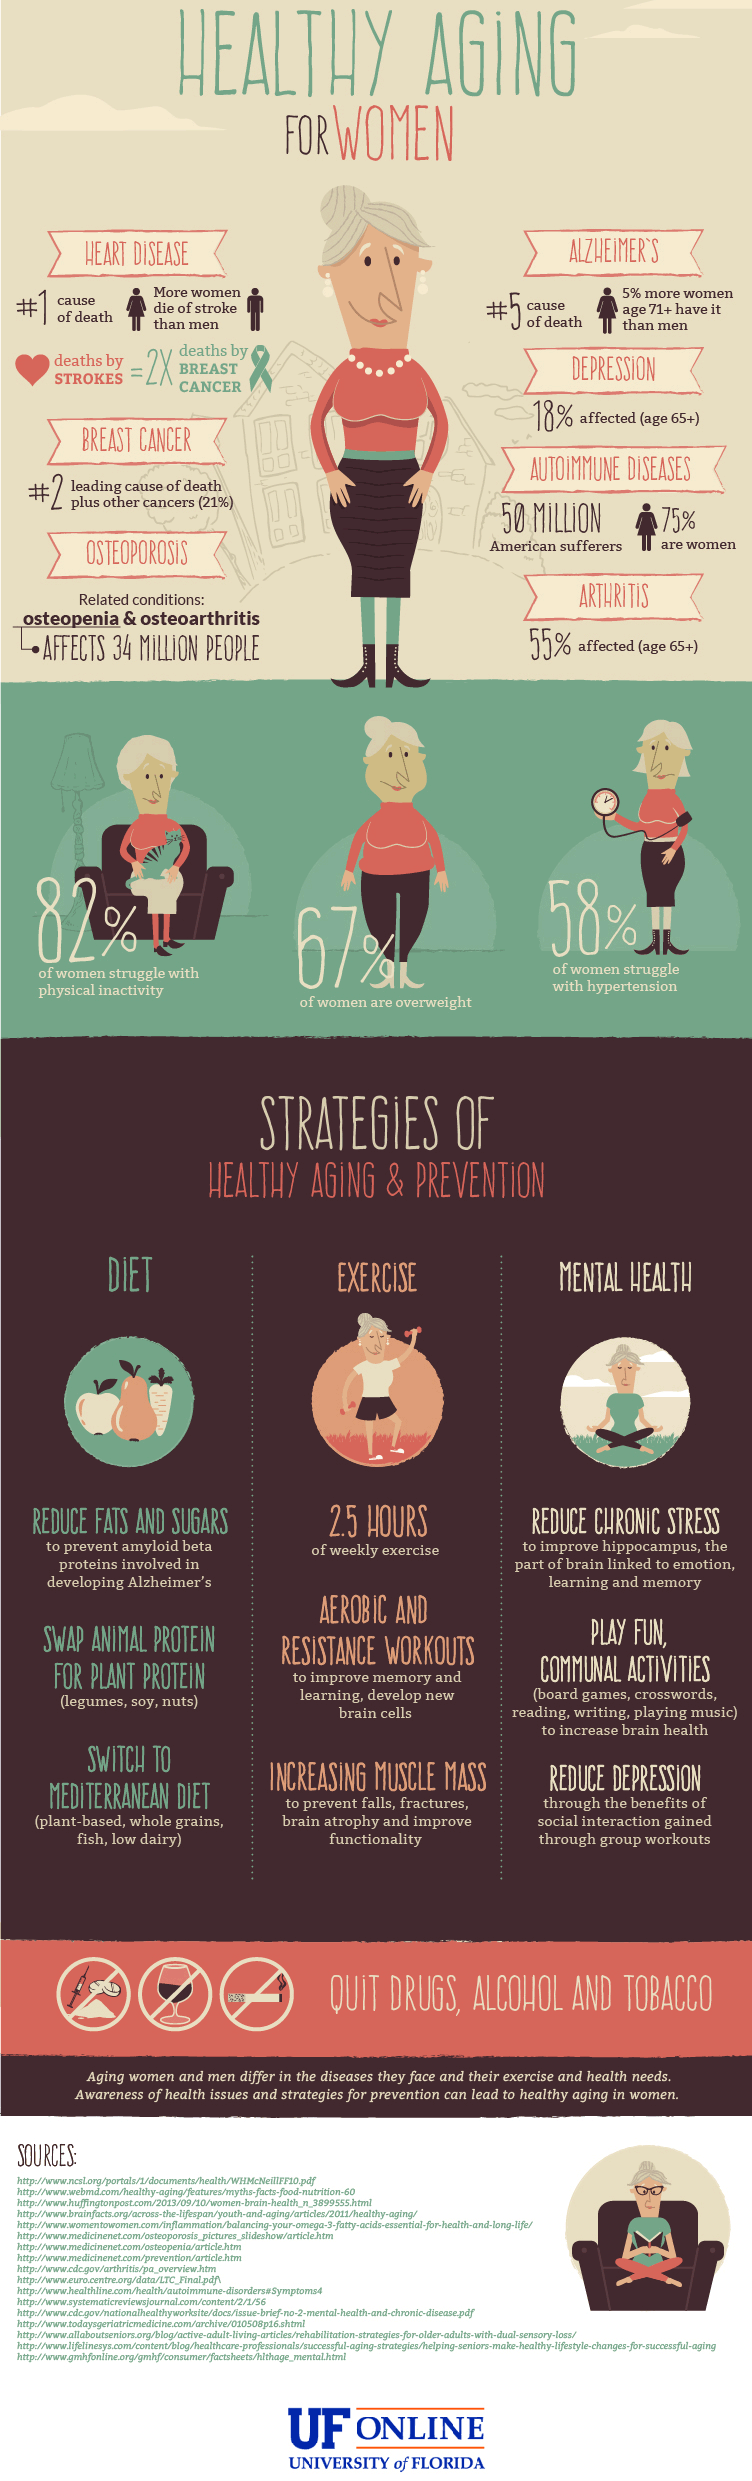 Healthy Aging for Women Infographic